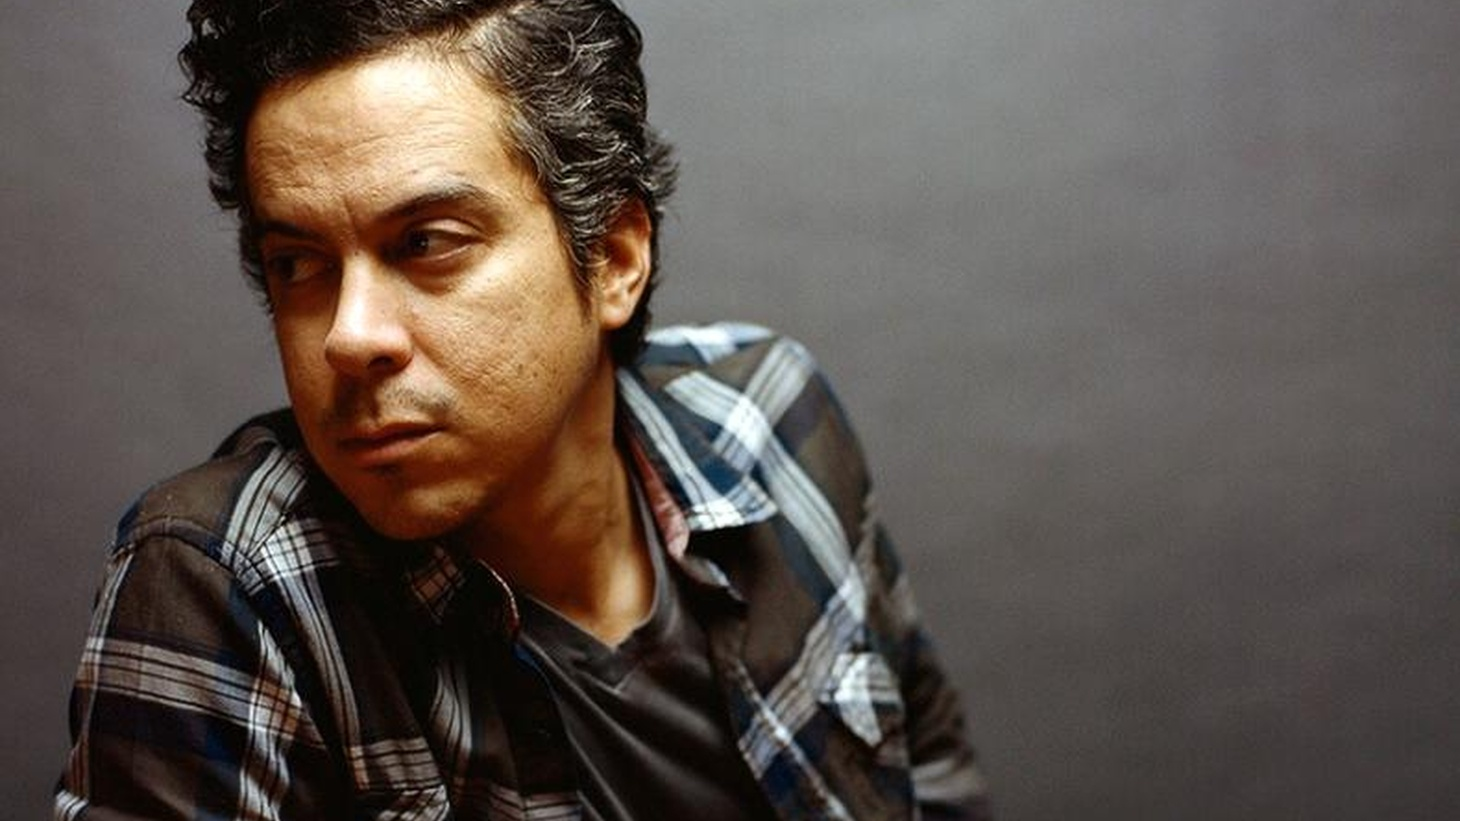 KCRW recorded a special live session with M. Ward that will air tomorrow during Morning Becomes Eclectic. To get you excited…